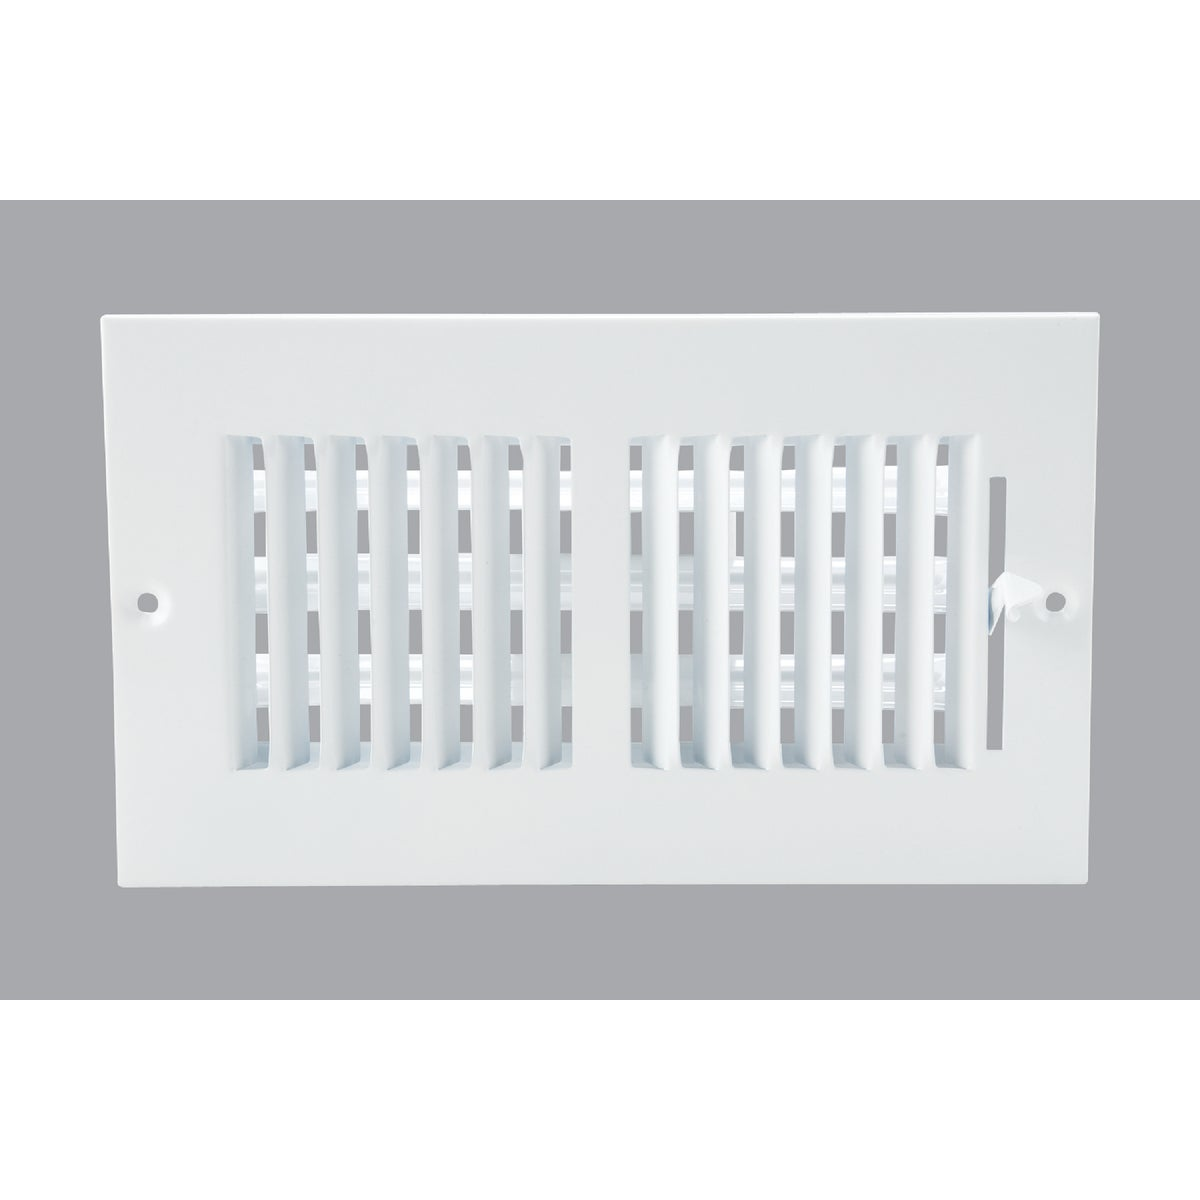 Home Impression 2-Way Wall Register, 2SW0804WH-B